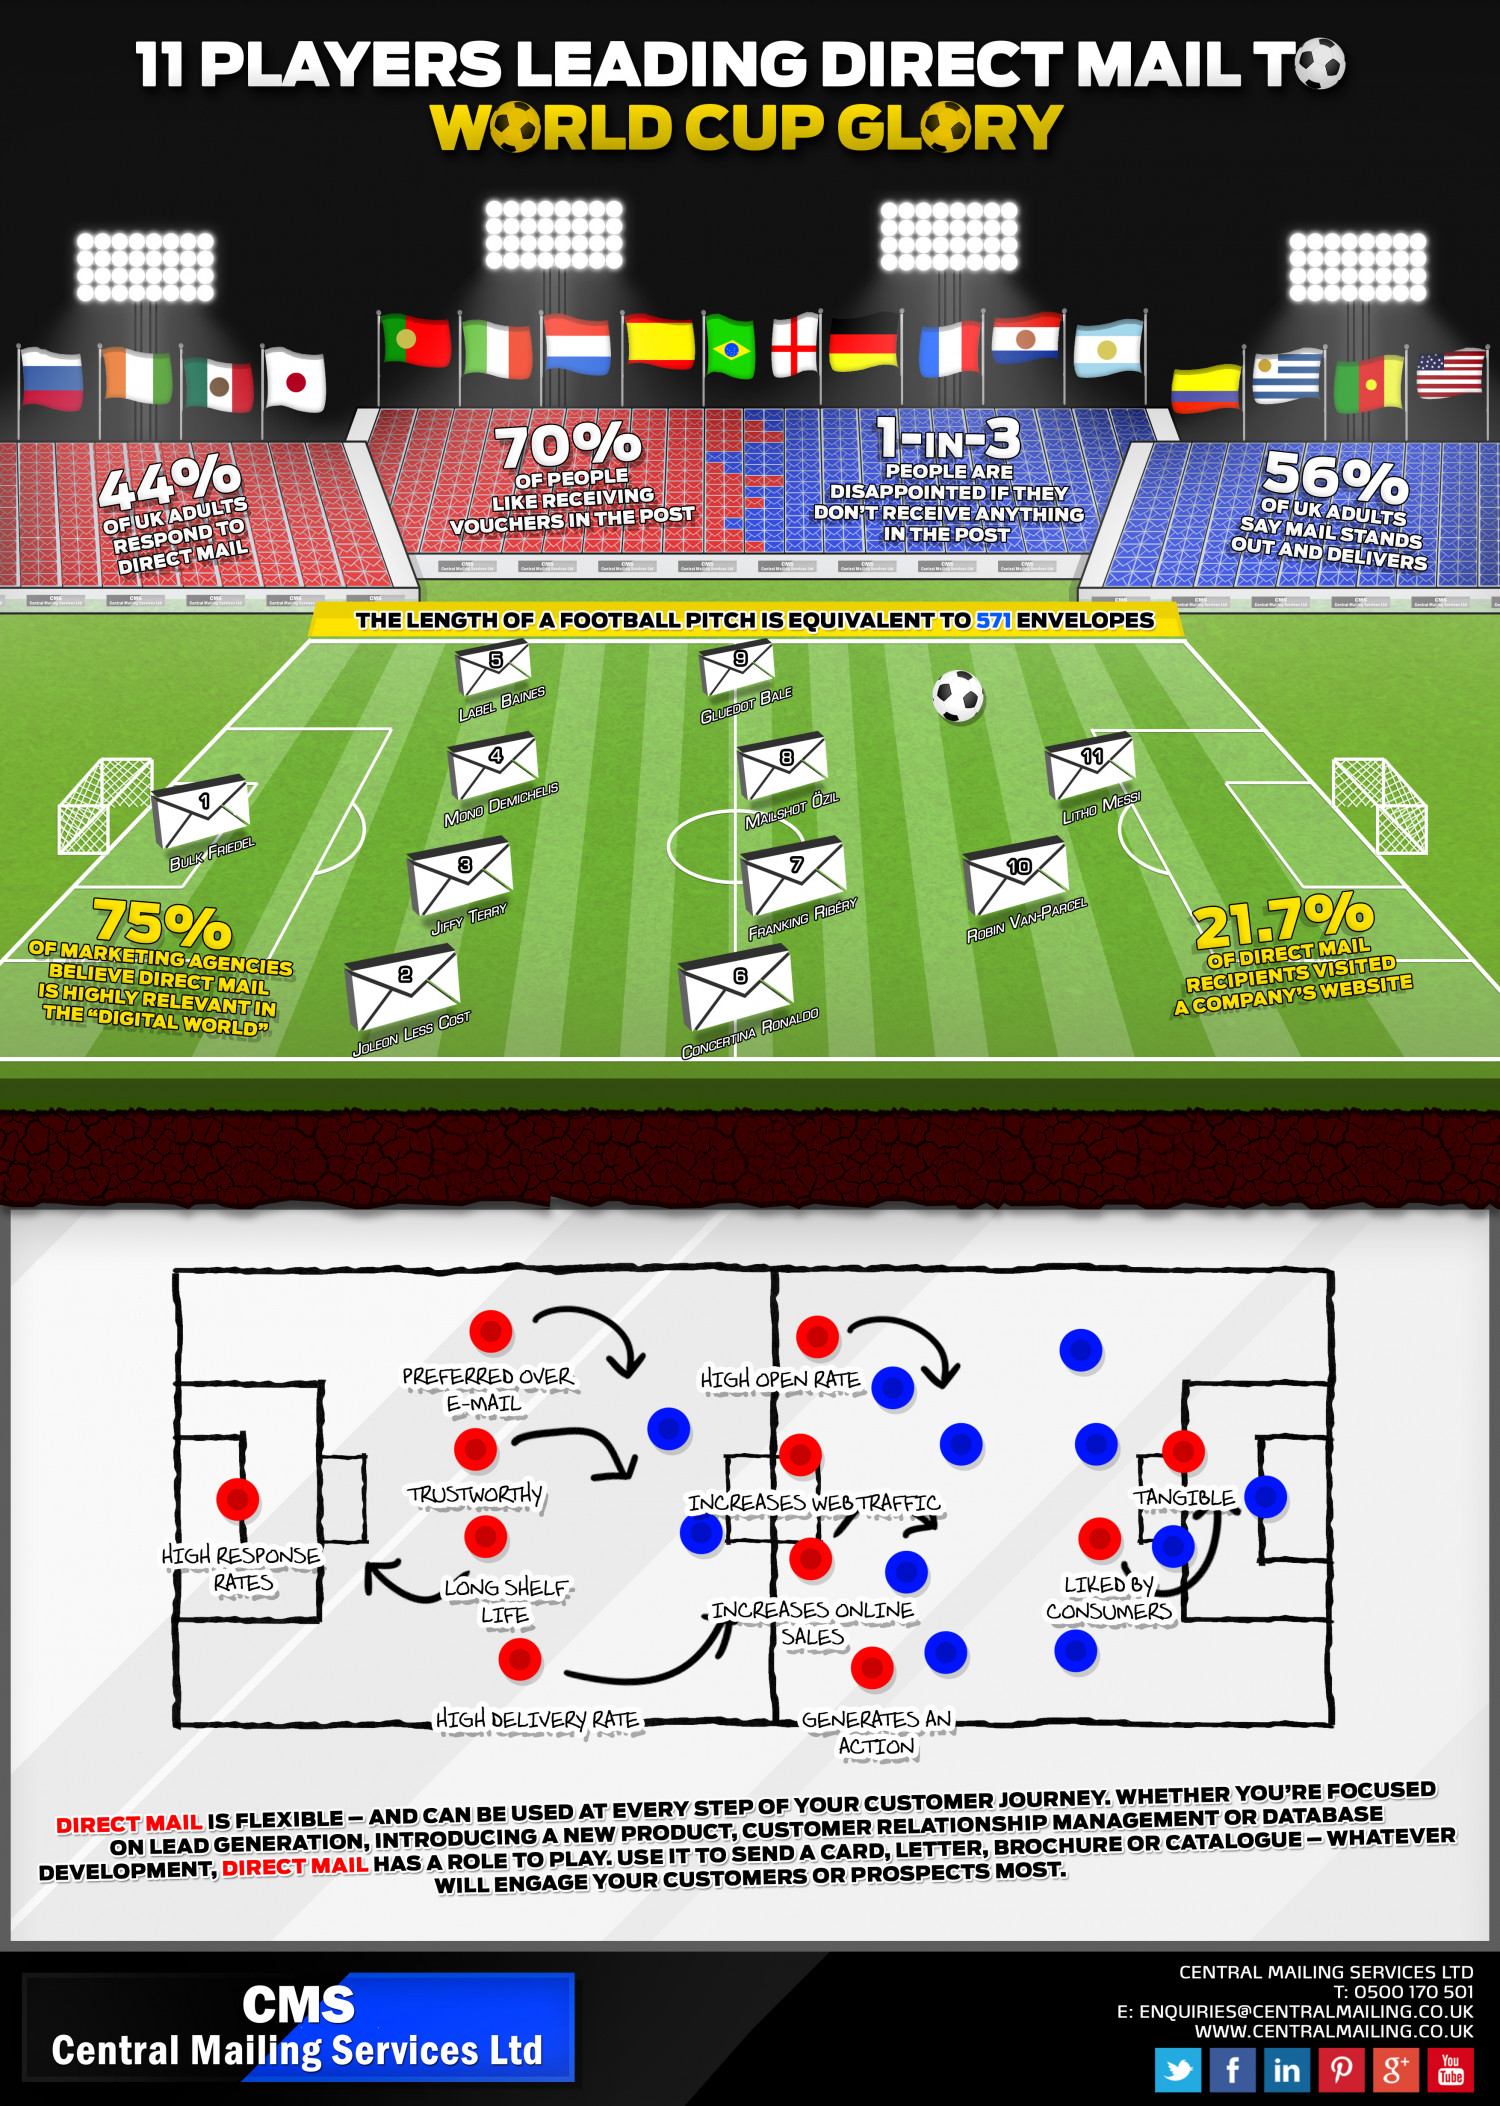 11 Players Leading Direct Mail To World Cup Glory Infographic